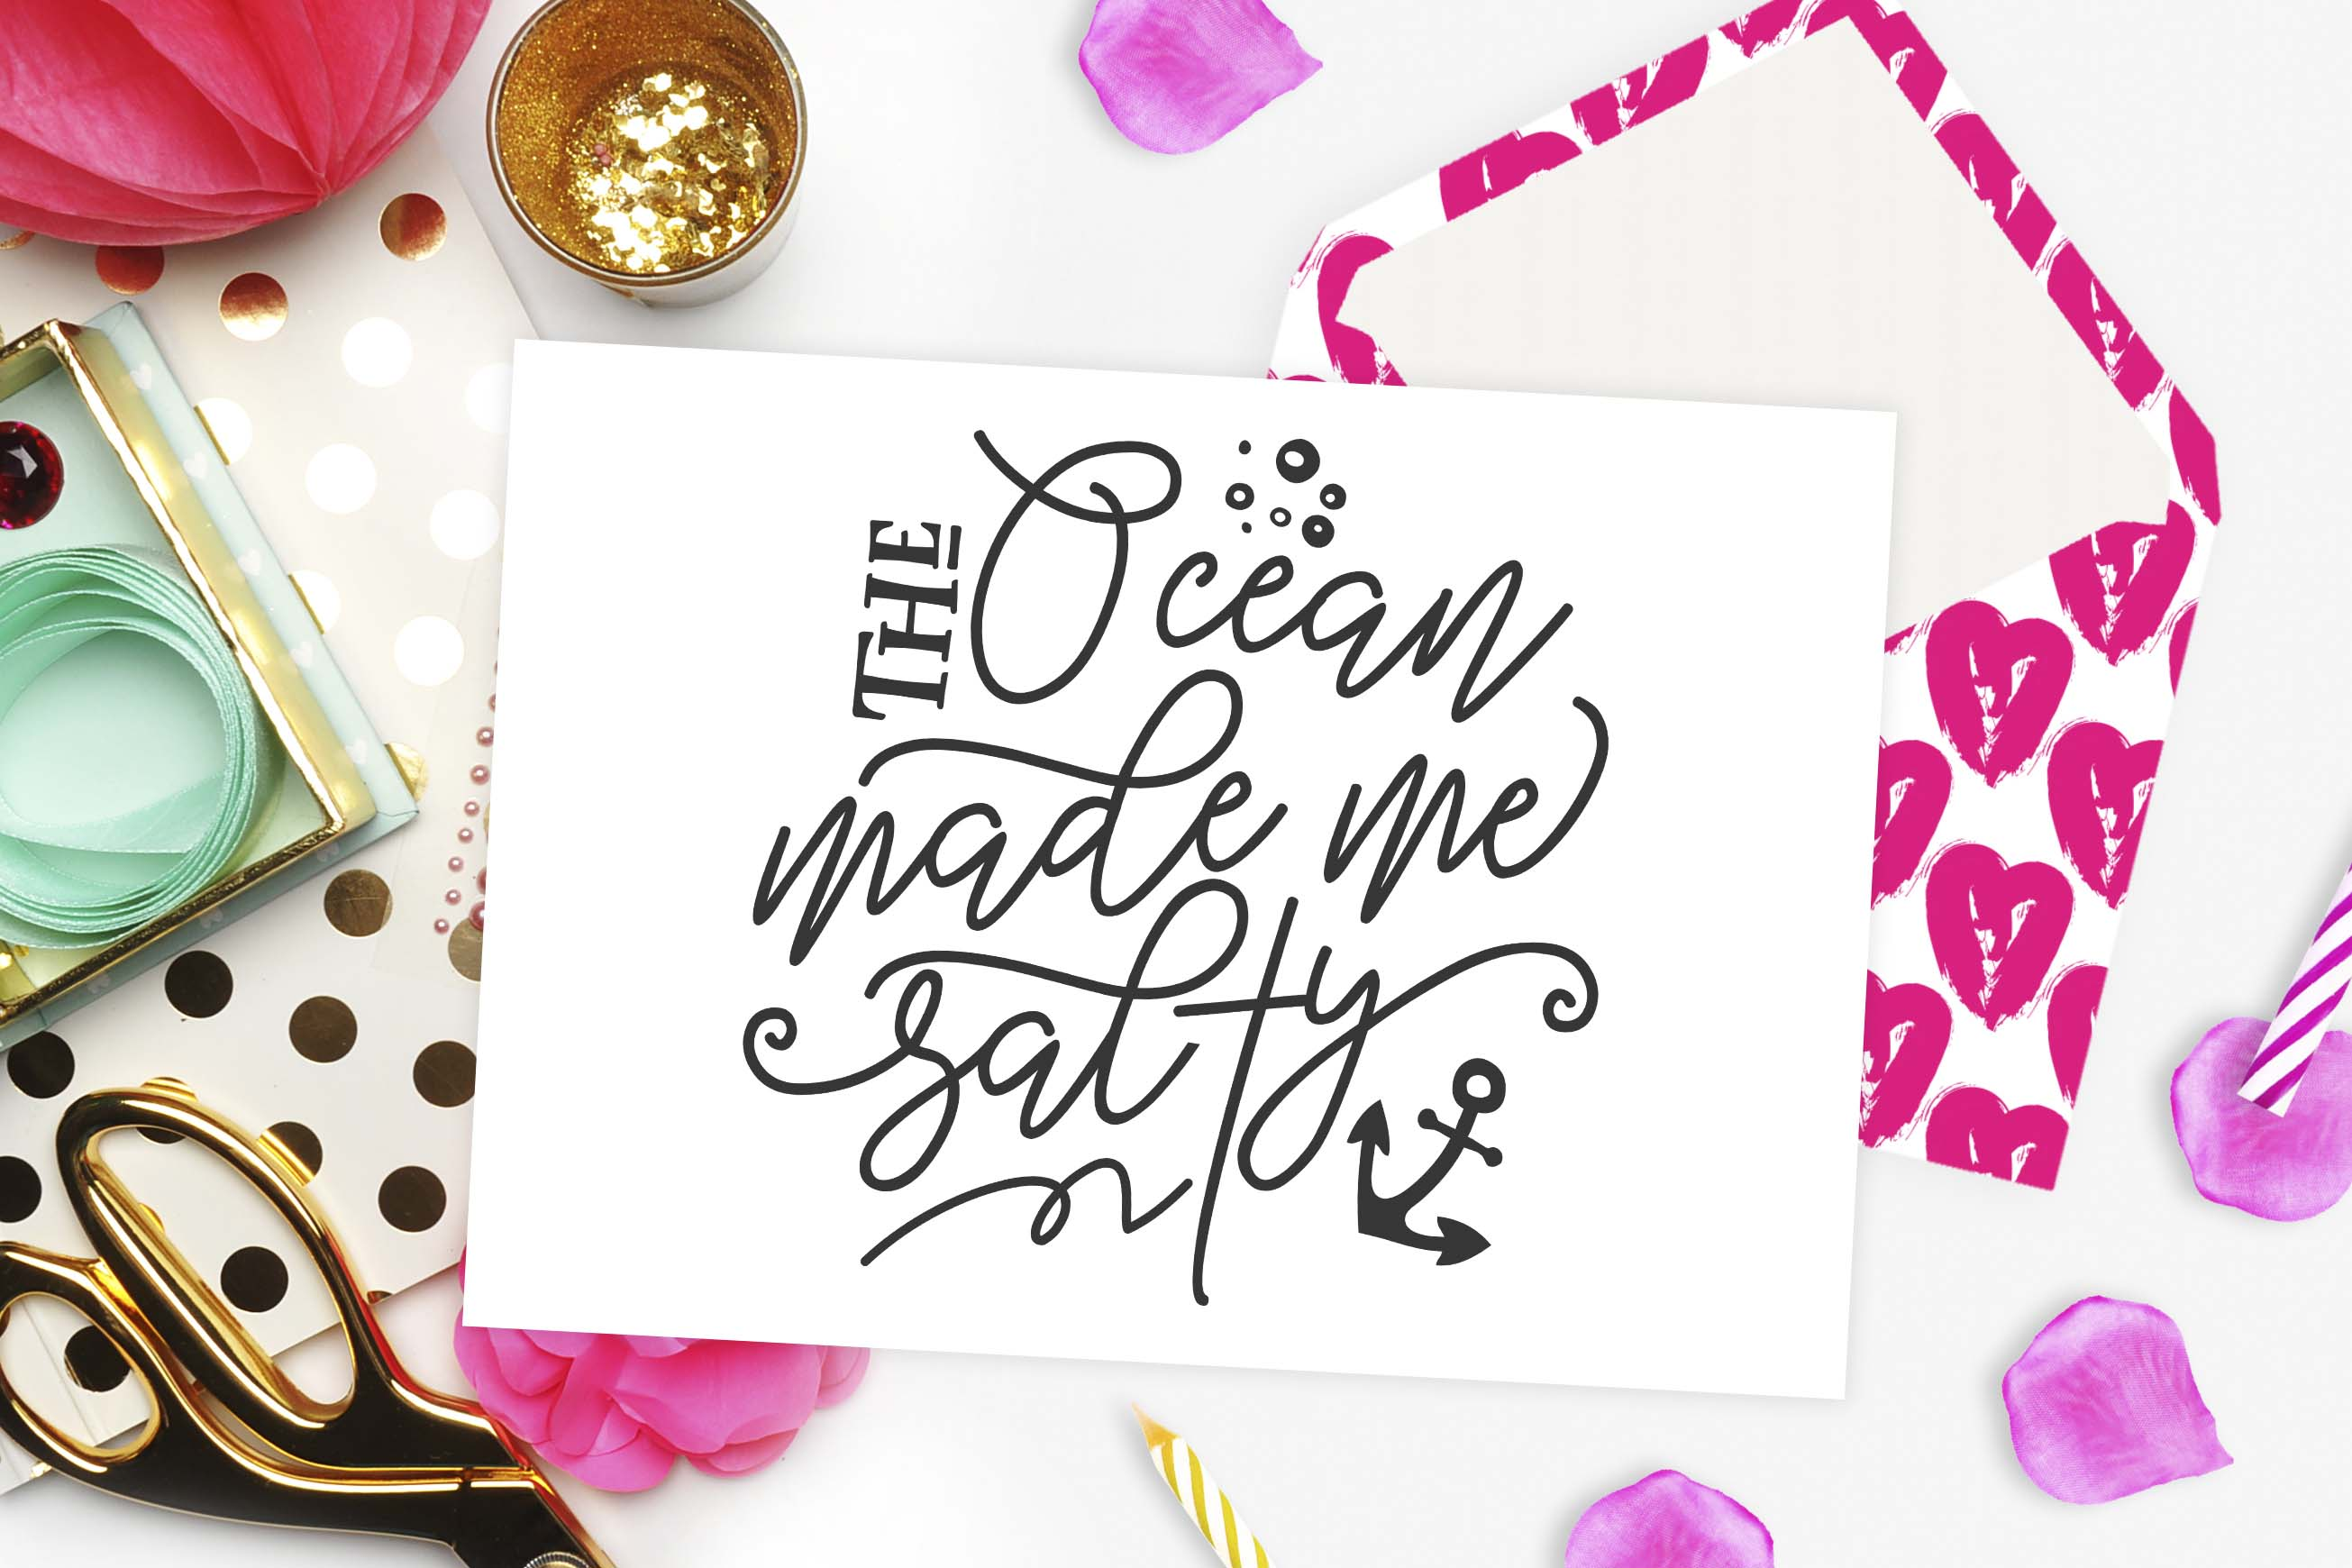 The ocean made me salty SVG DXF PNG EPS example image 2